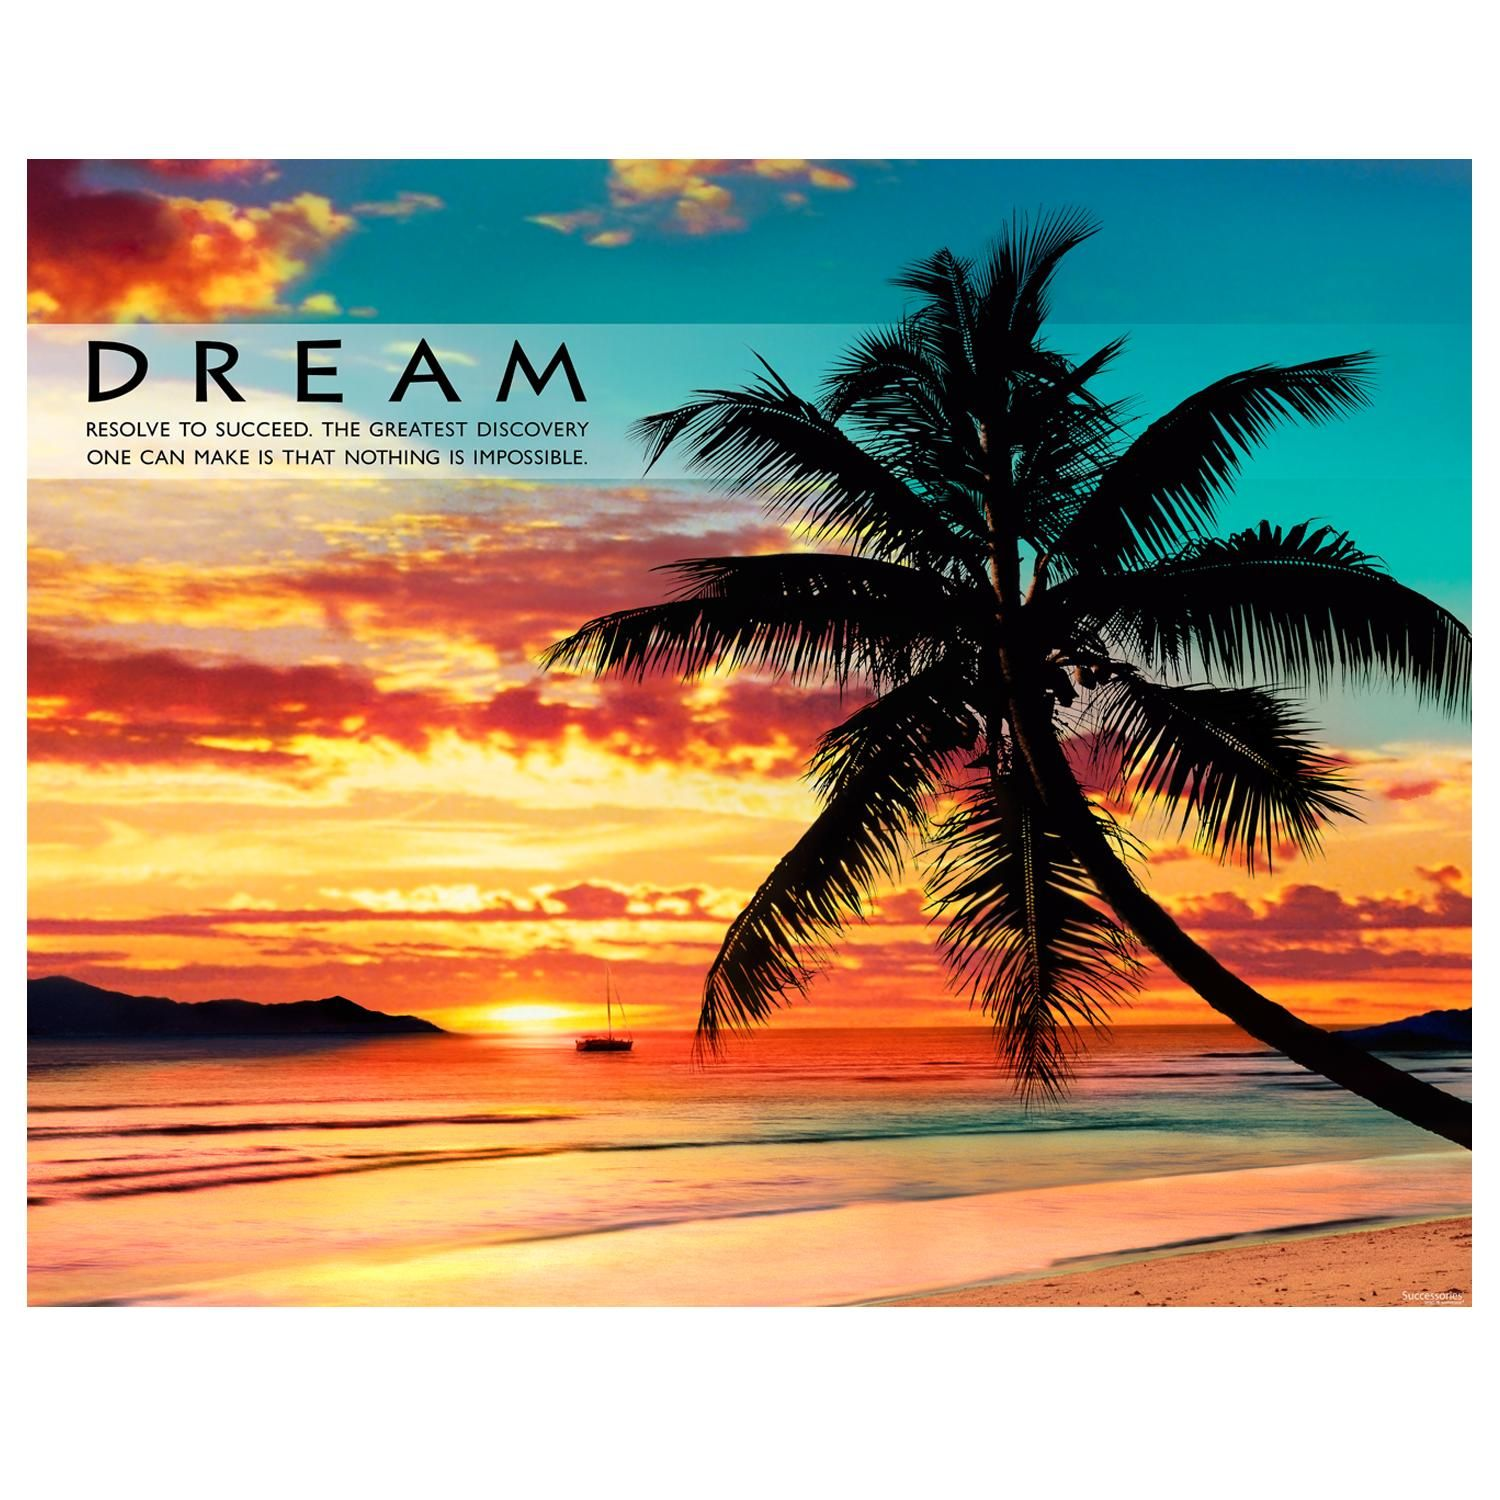 Motivational quotes dream quotes dream big quotes action quotes - Dream Beach Unframed Motivational Poster Live Your Dream Quotesposter